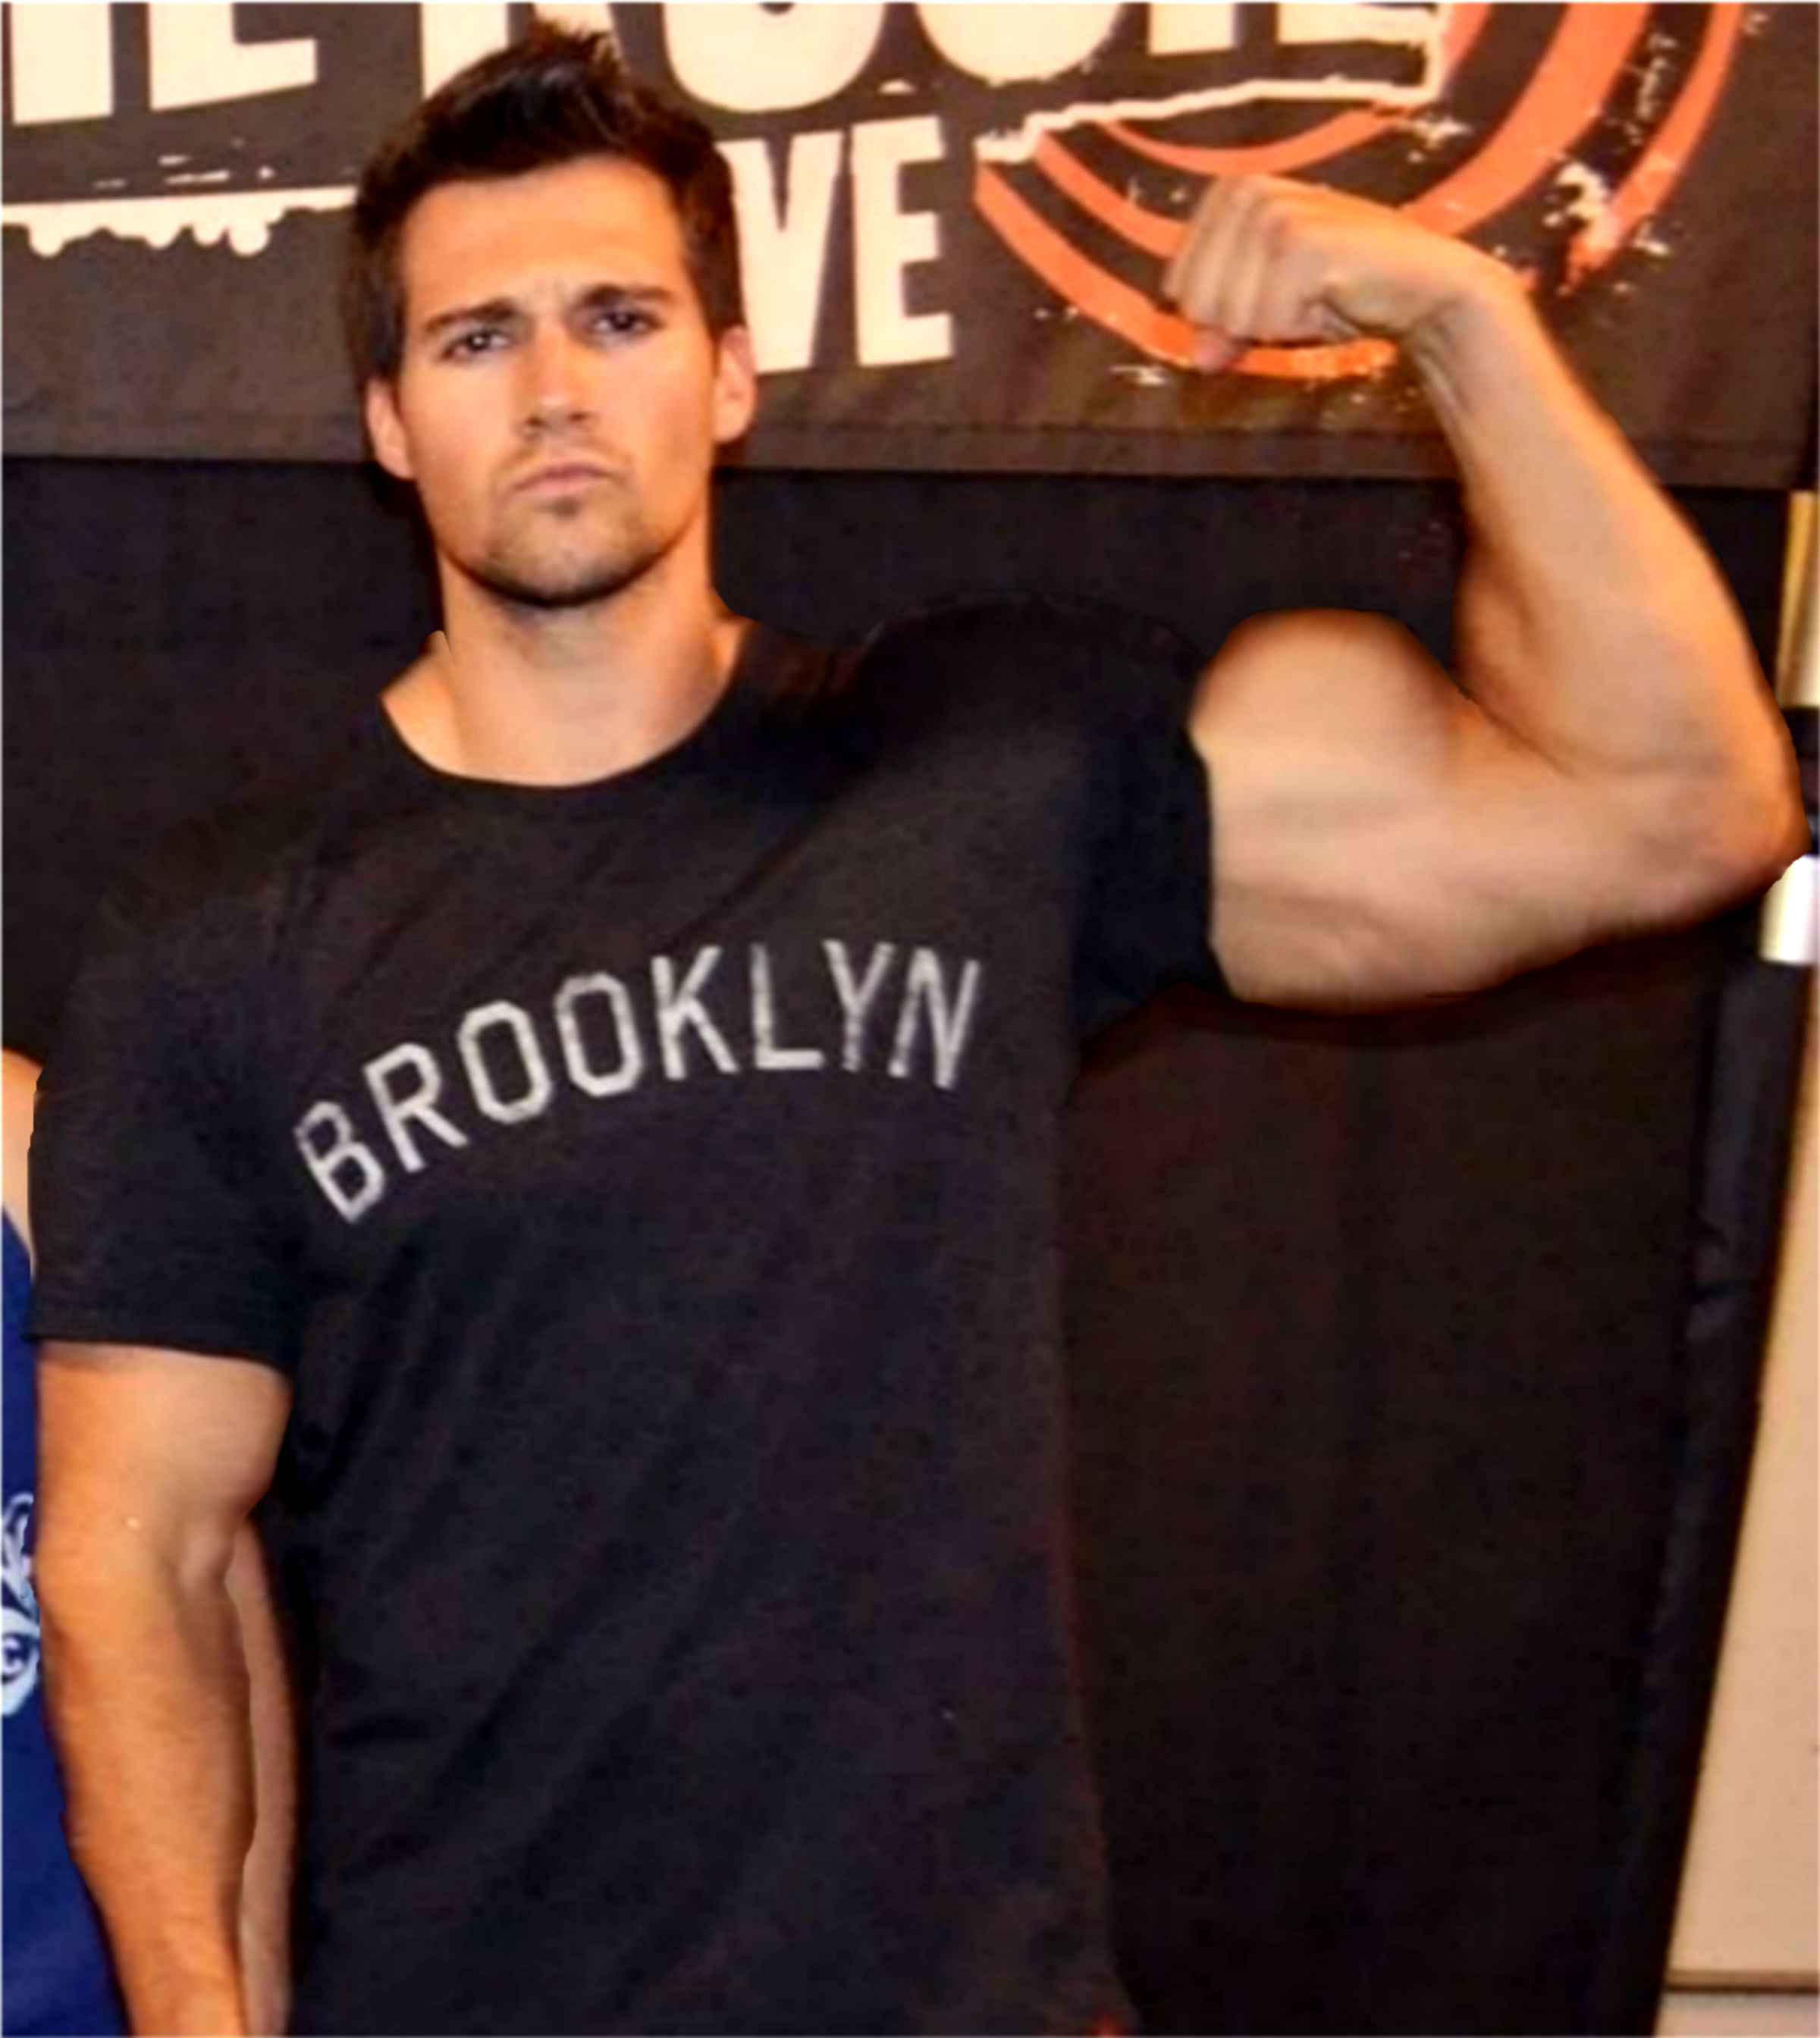 Very james maslow bulge